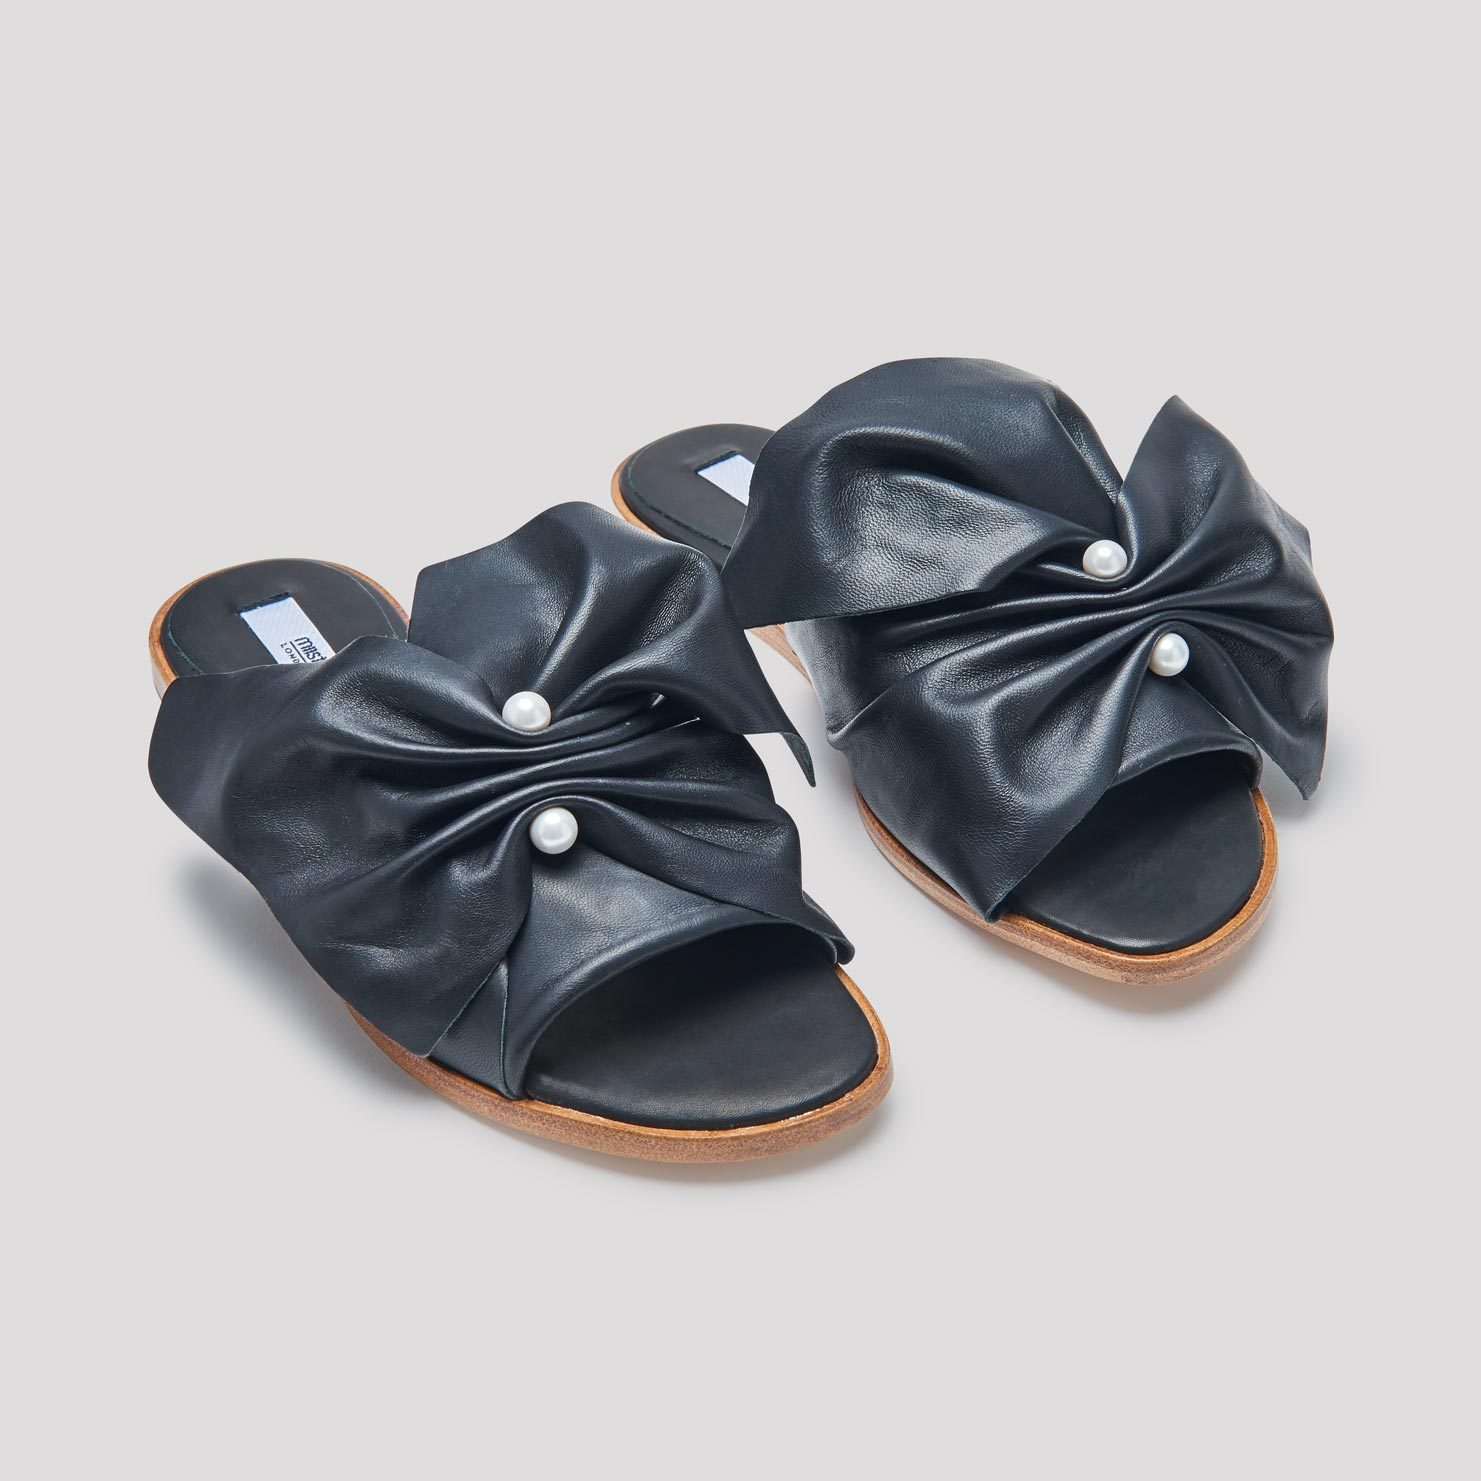 Miista Carina Black Leather Sandals